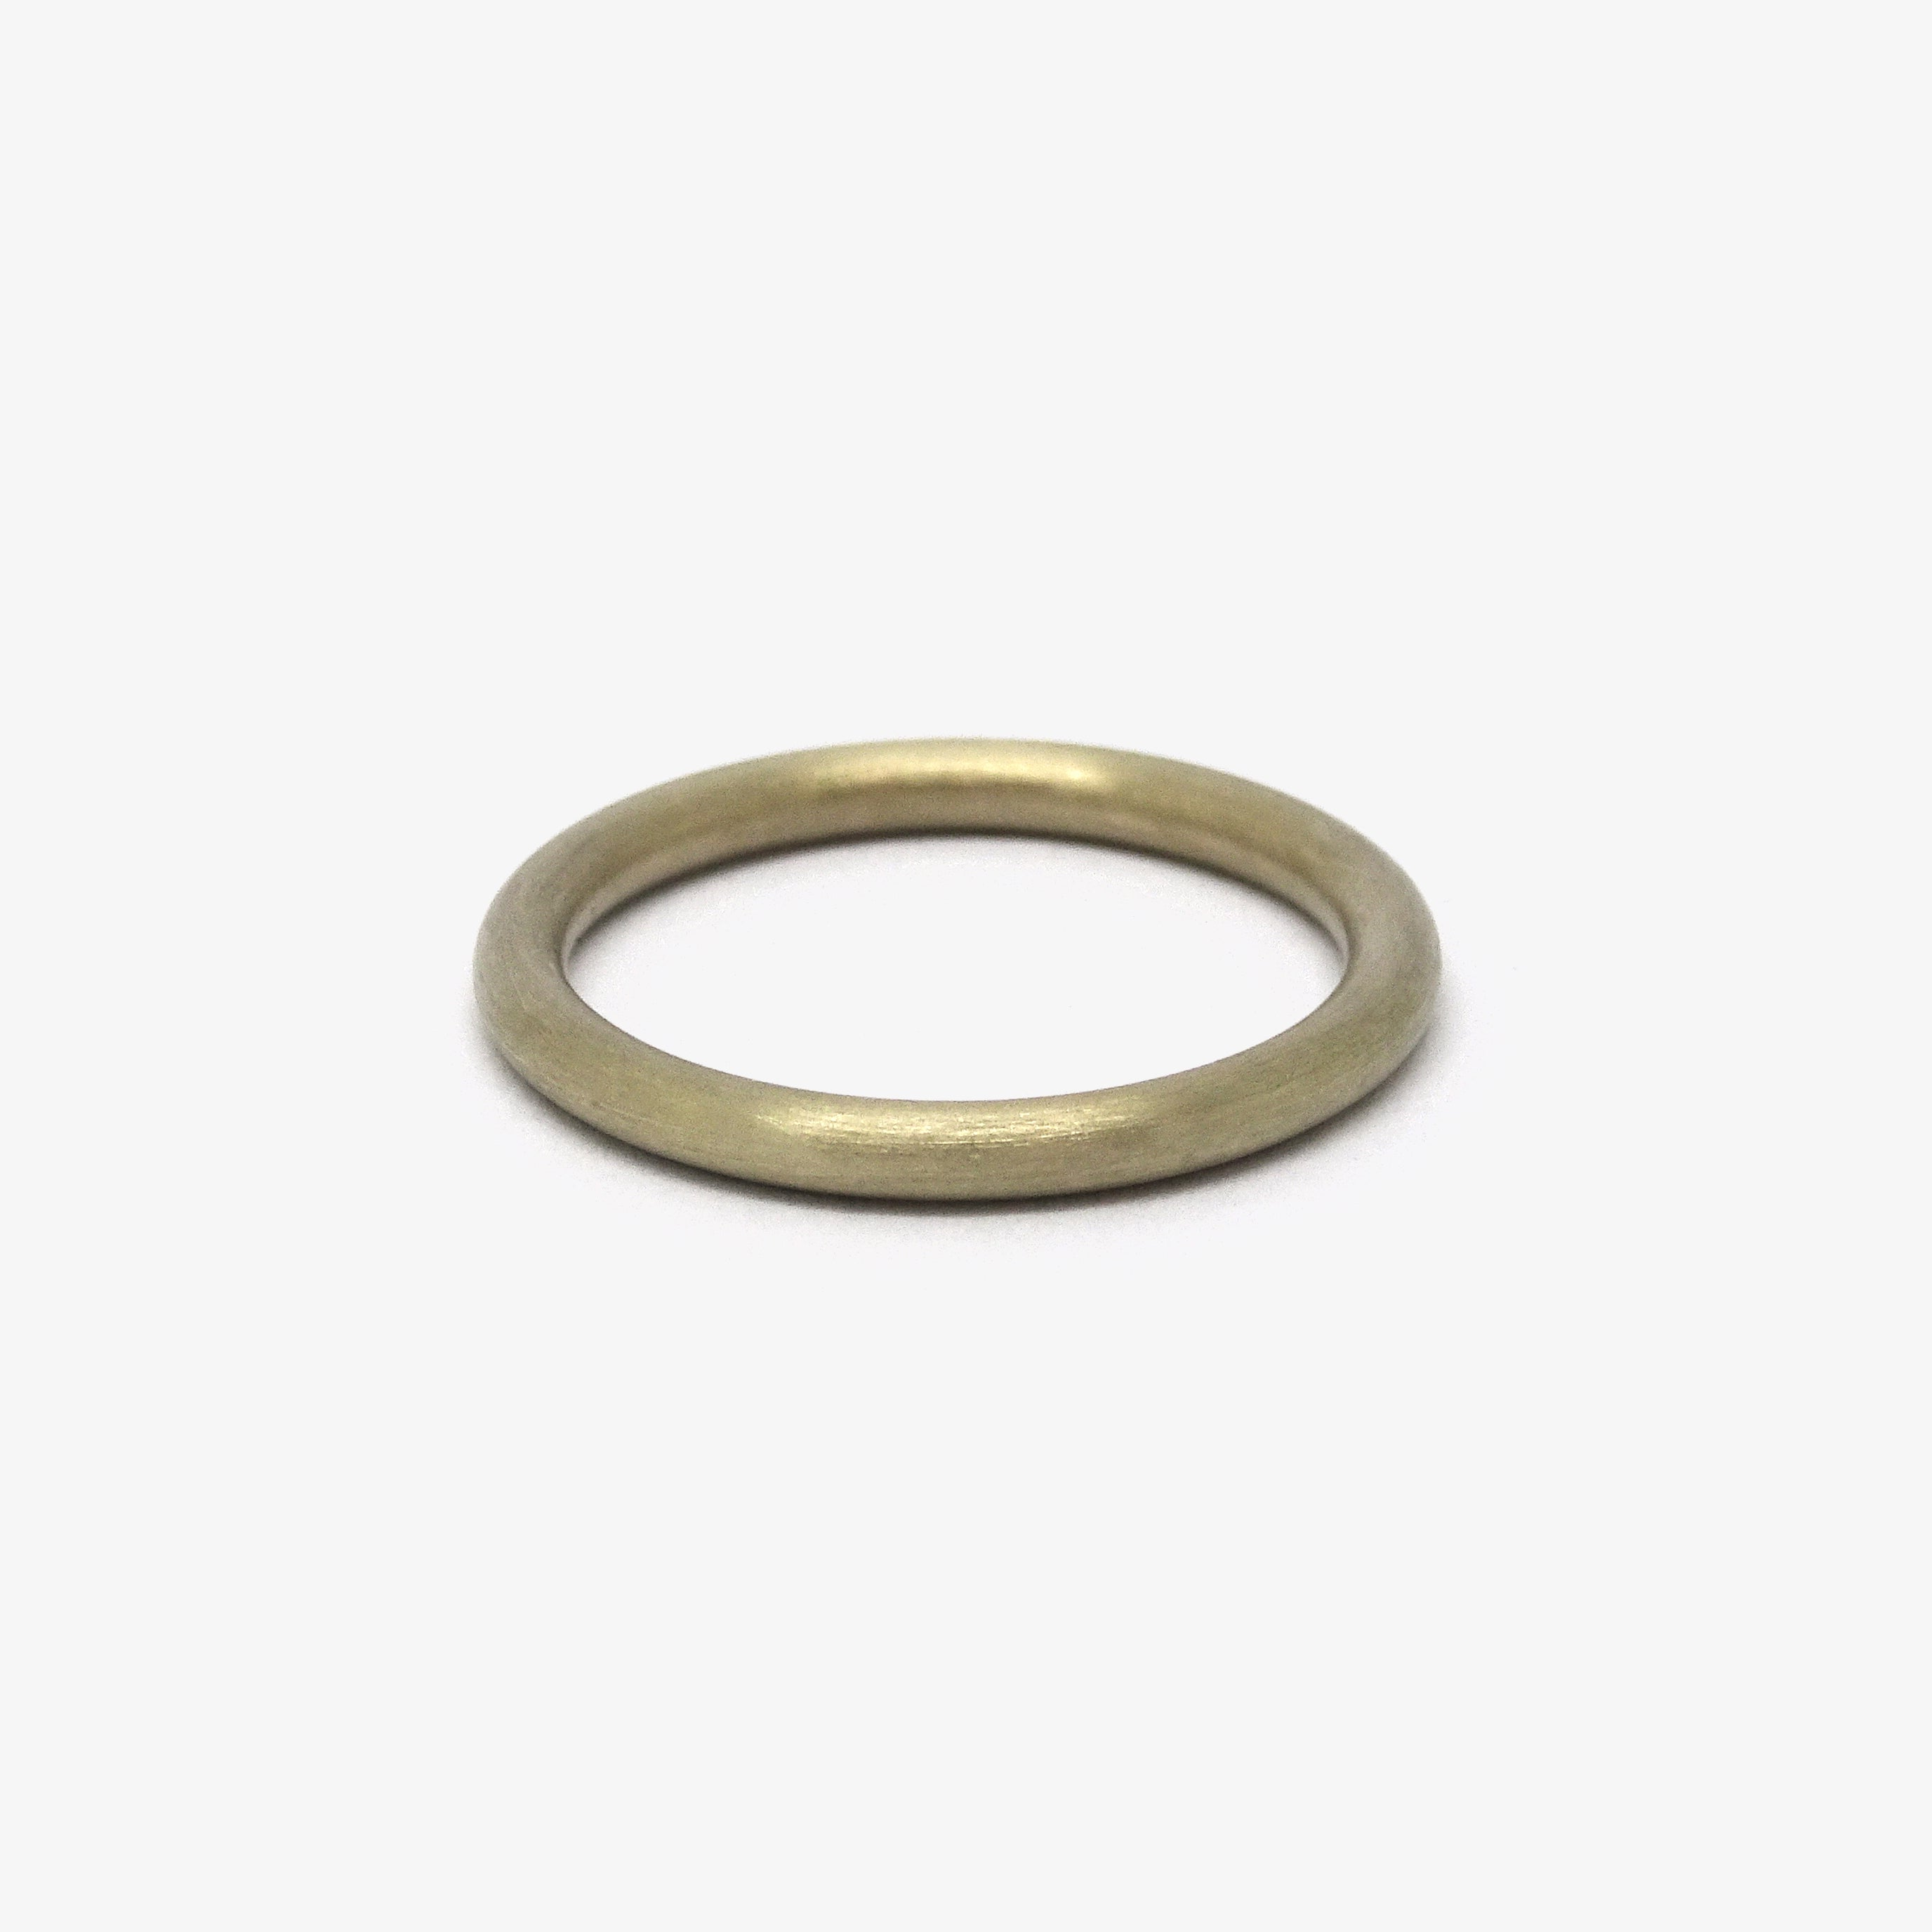 ROUND WEDDING RING - 2Ø IVORY GOLD